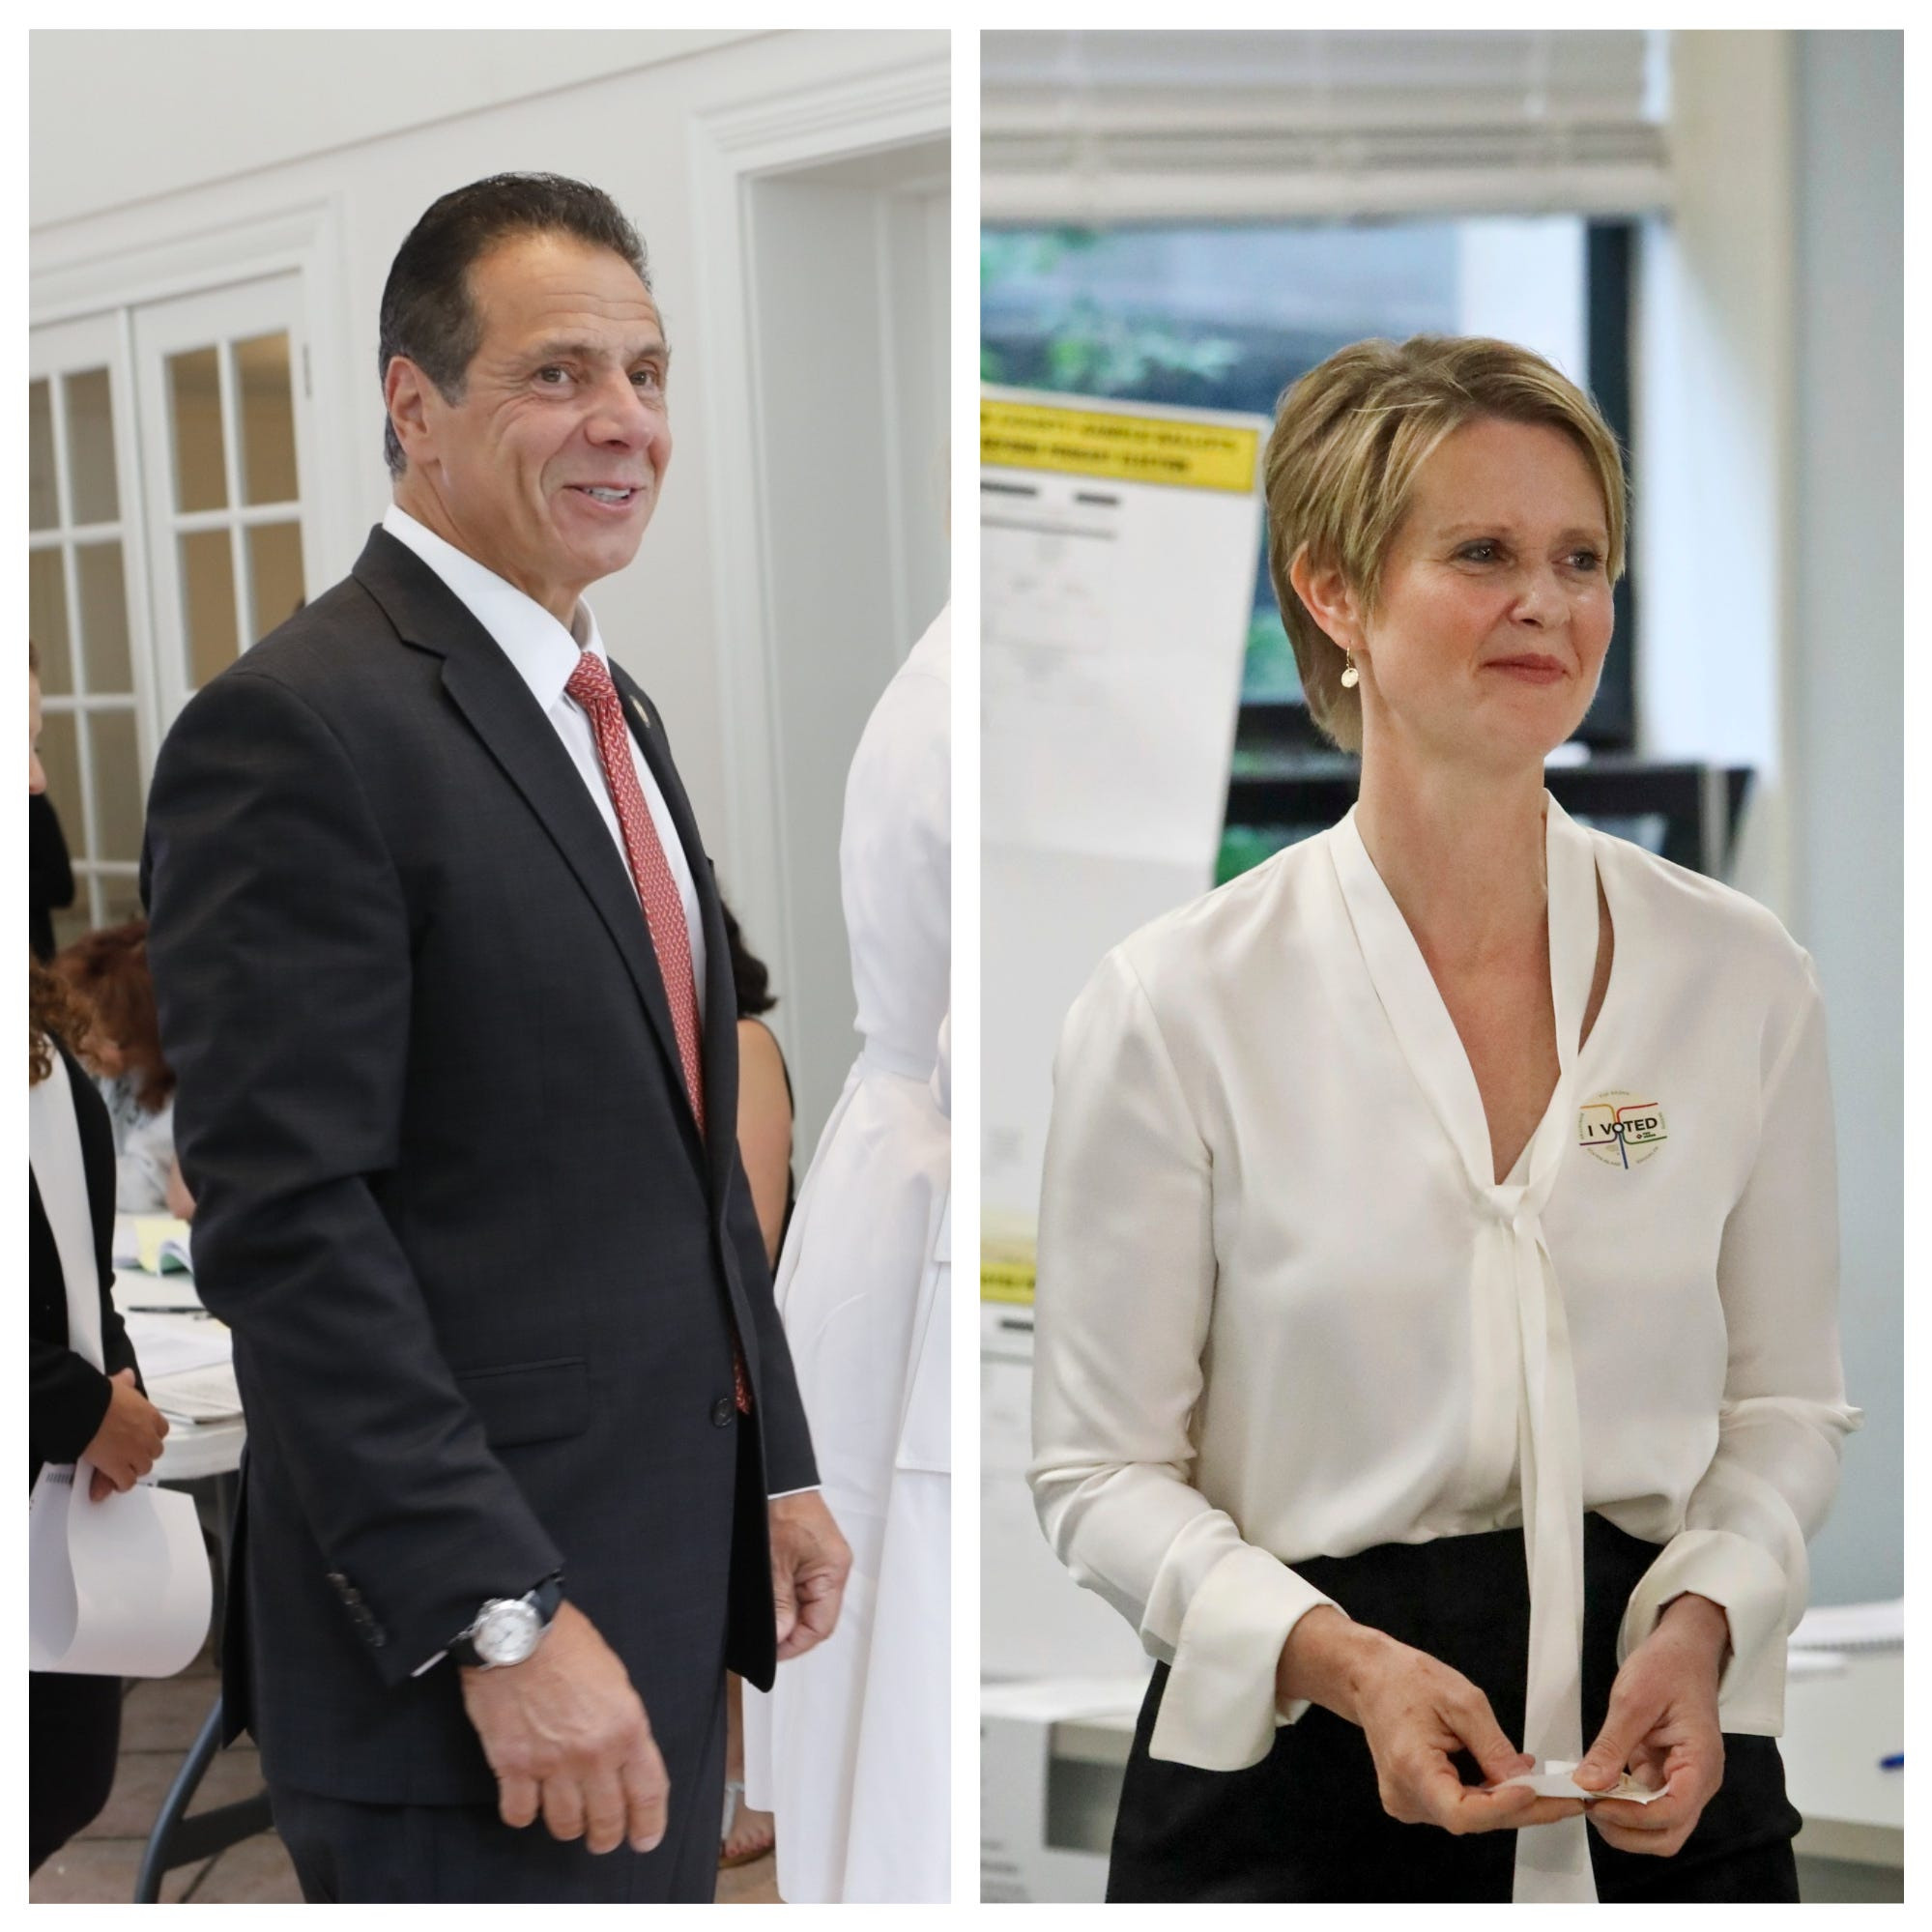 Andrew Cuomo wins easily over Cynthia Nixon in New York primary